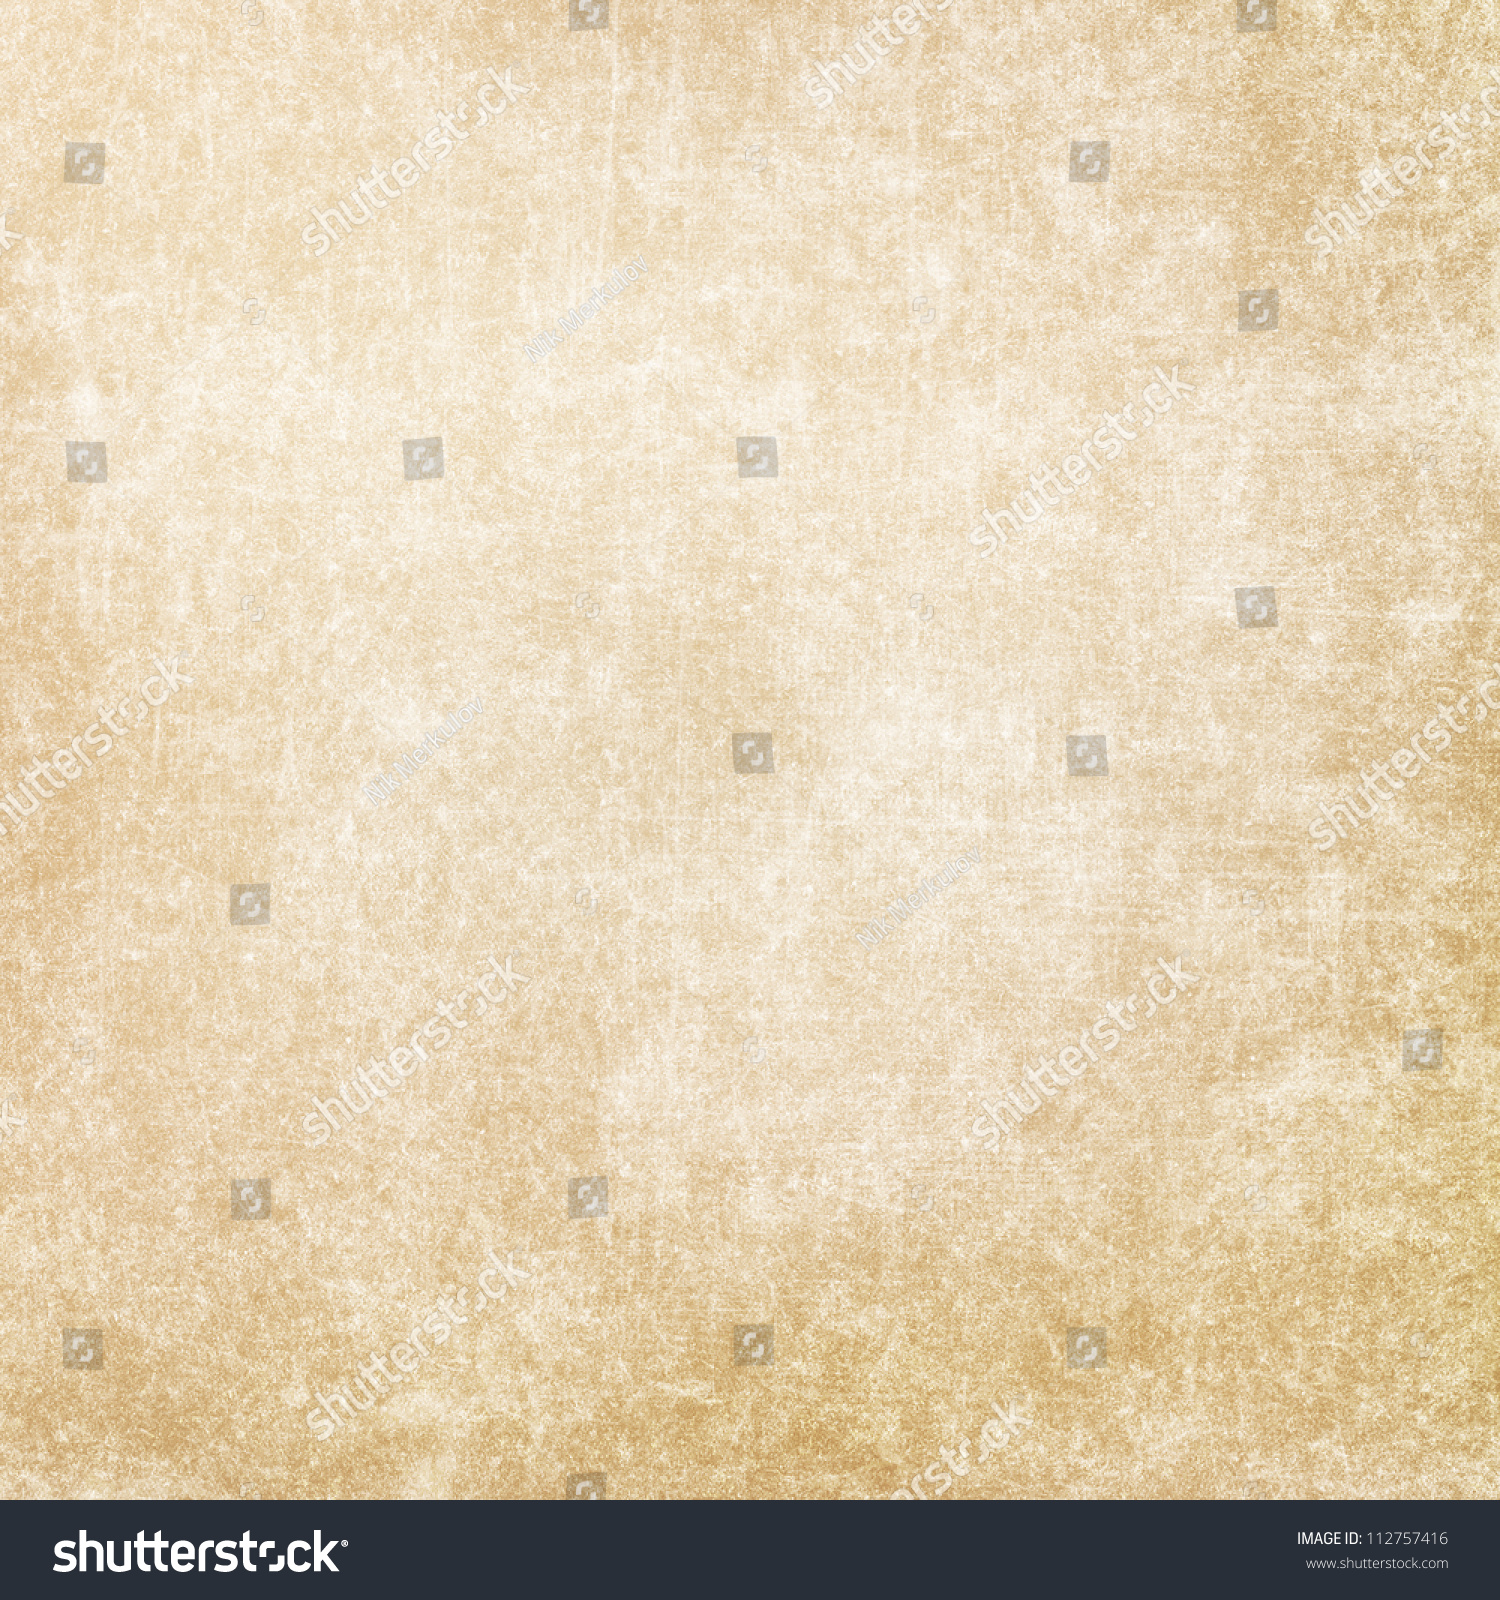 Küchenuhr Retro Beige ~ vintage beige background stock illustration 112757416 shutterstock